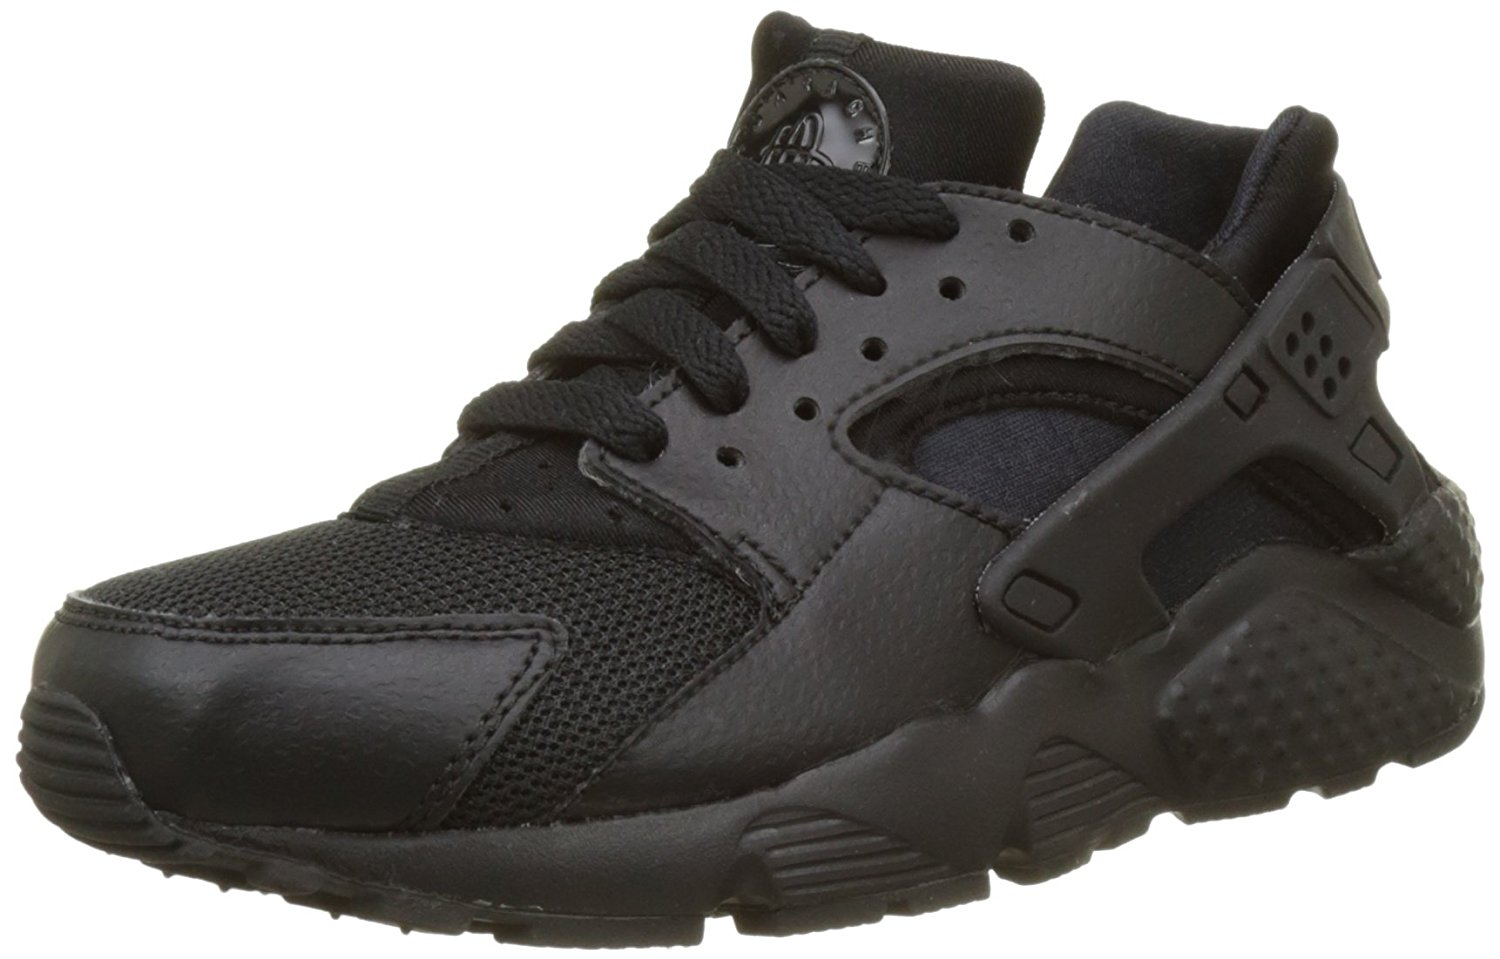 online store def7f b5cfa Get Quotations · Nike Huarache Run GS Youth Lifestyle Sneakers Black - 5